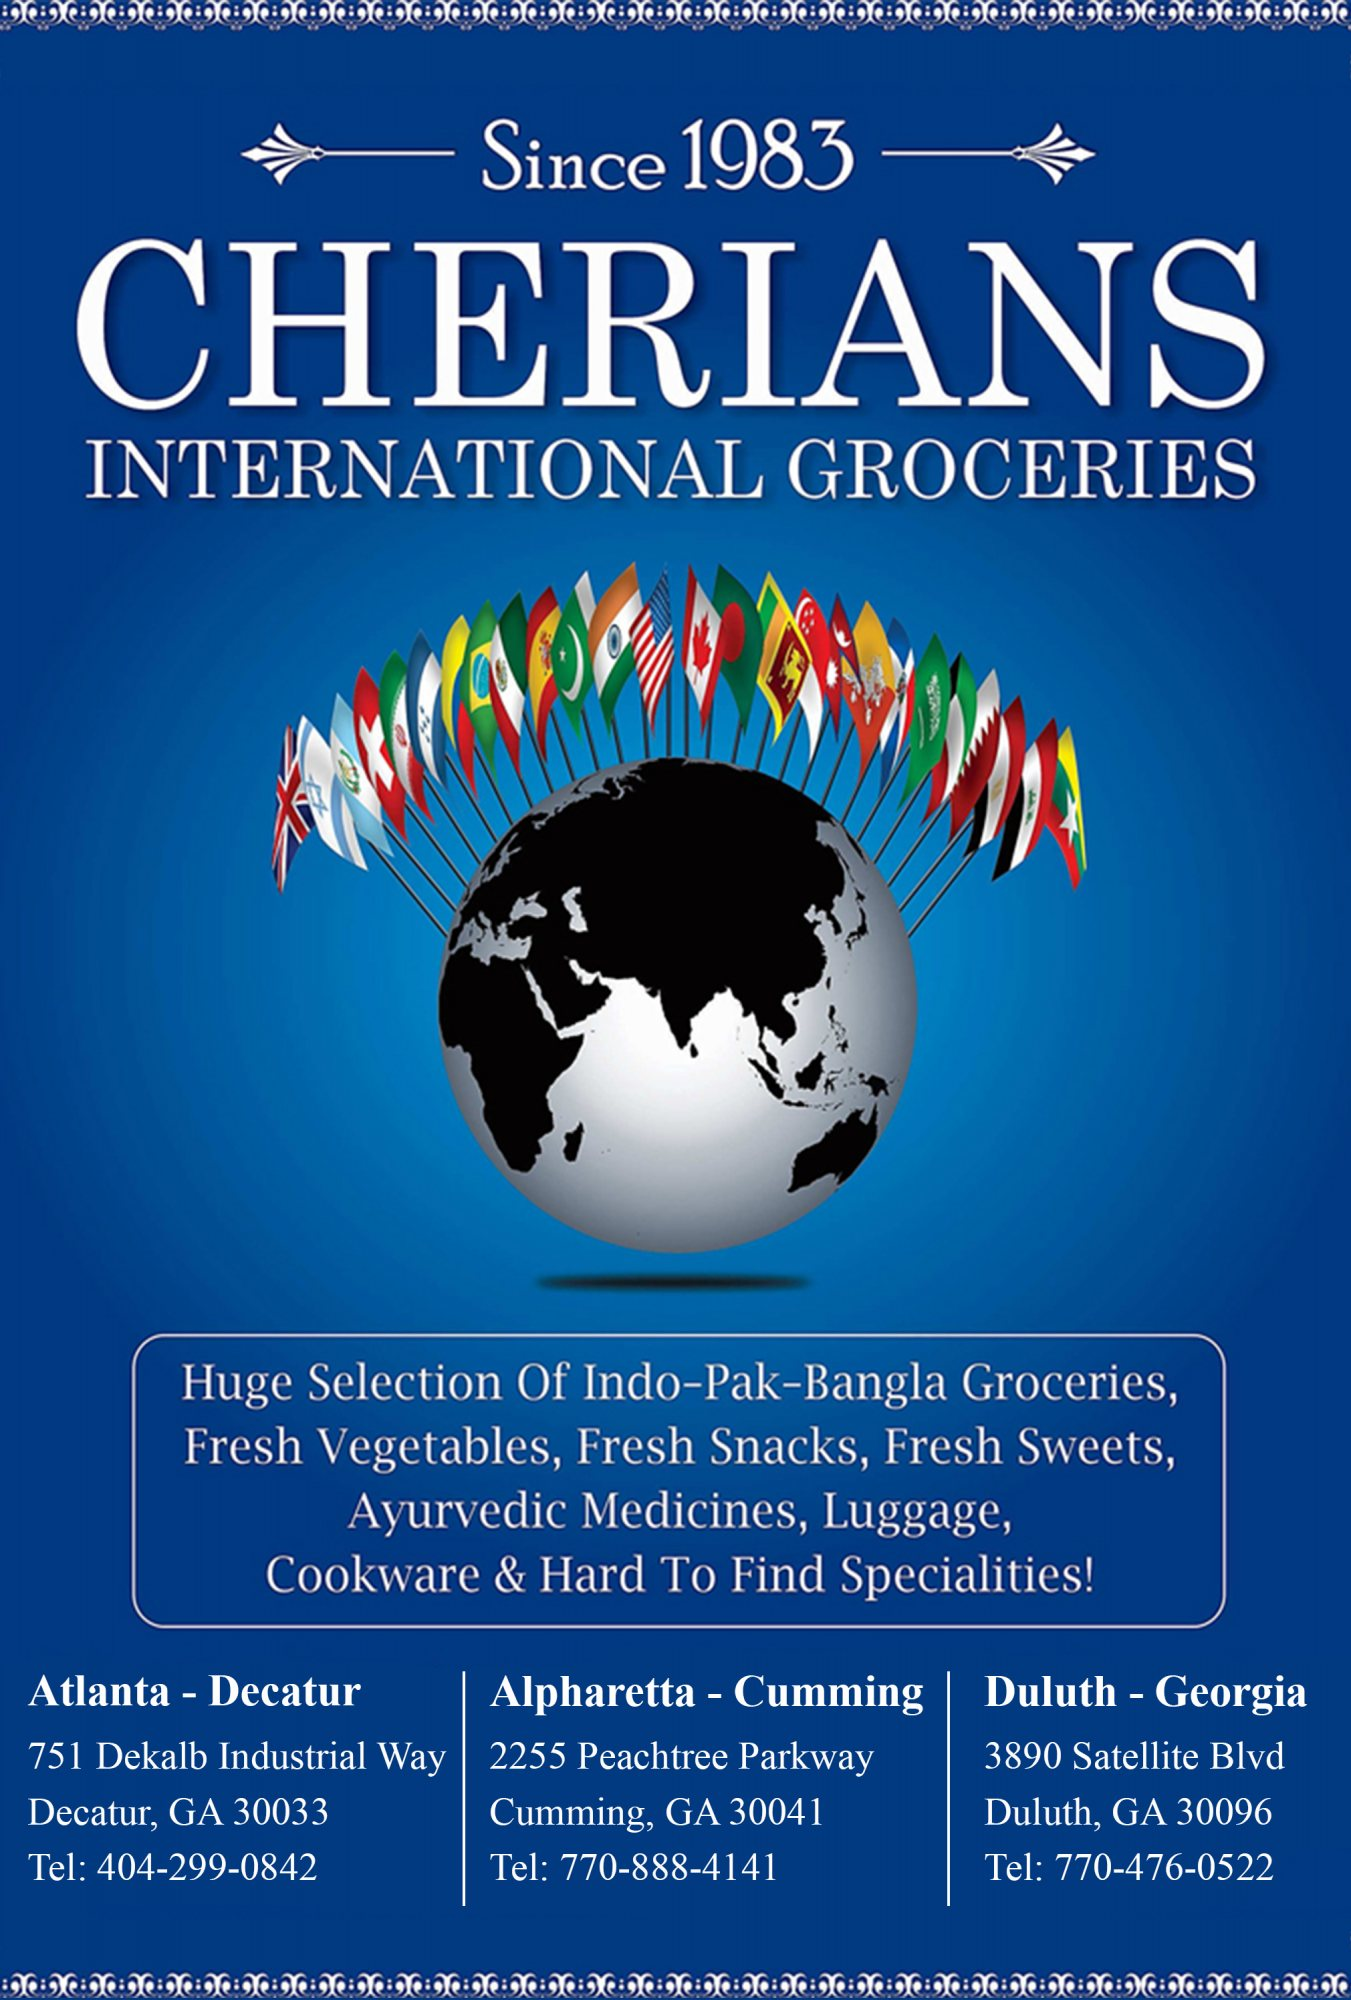 Cherians International Gorceries